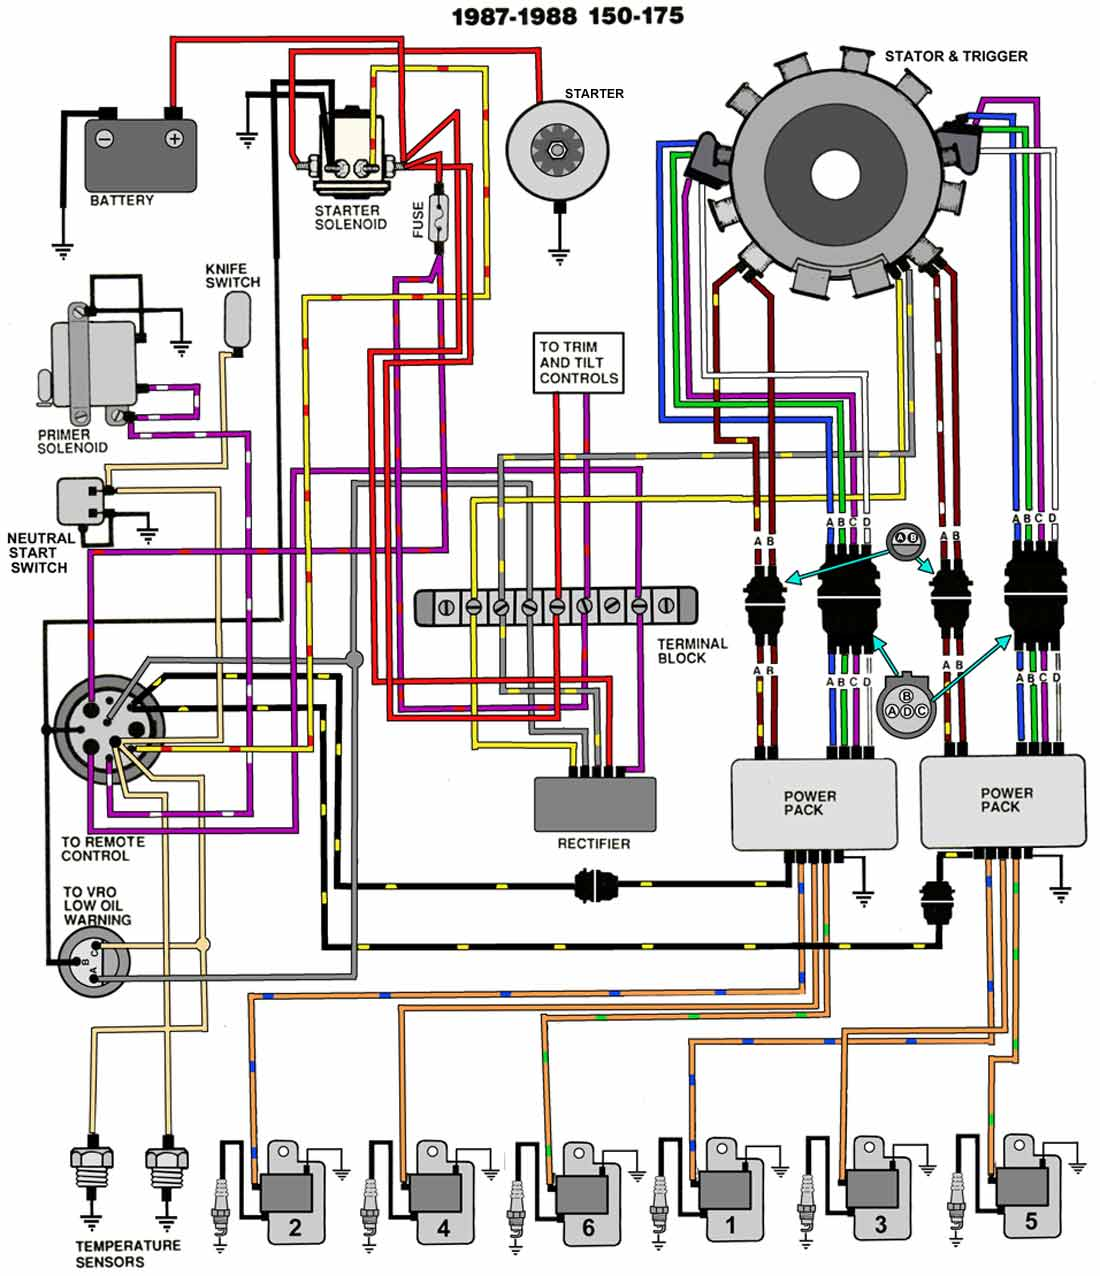 87_88_150_175 yamaha outboard motor wiring diagrams the wiring diagram  at fashall.co